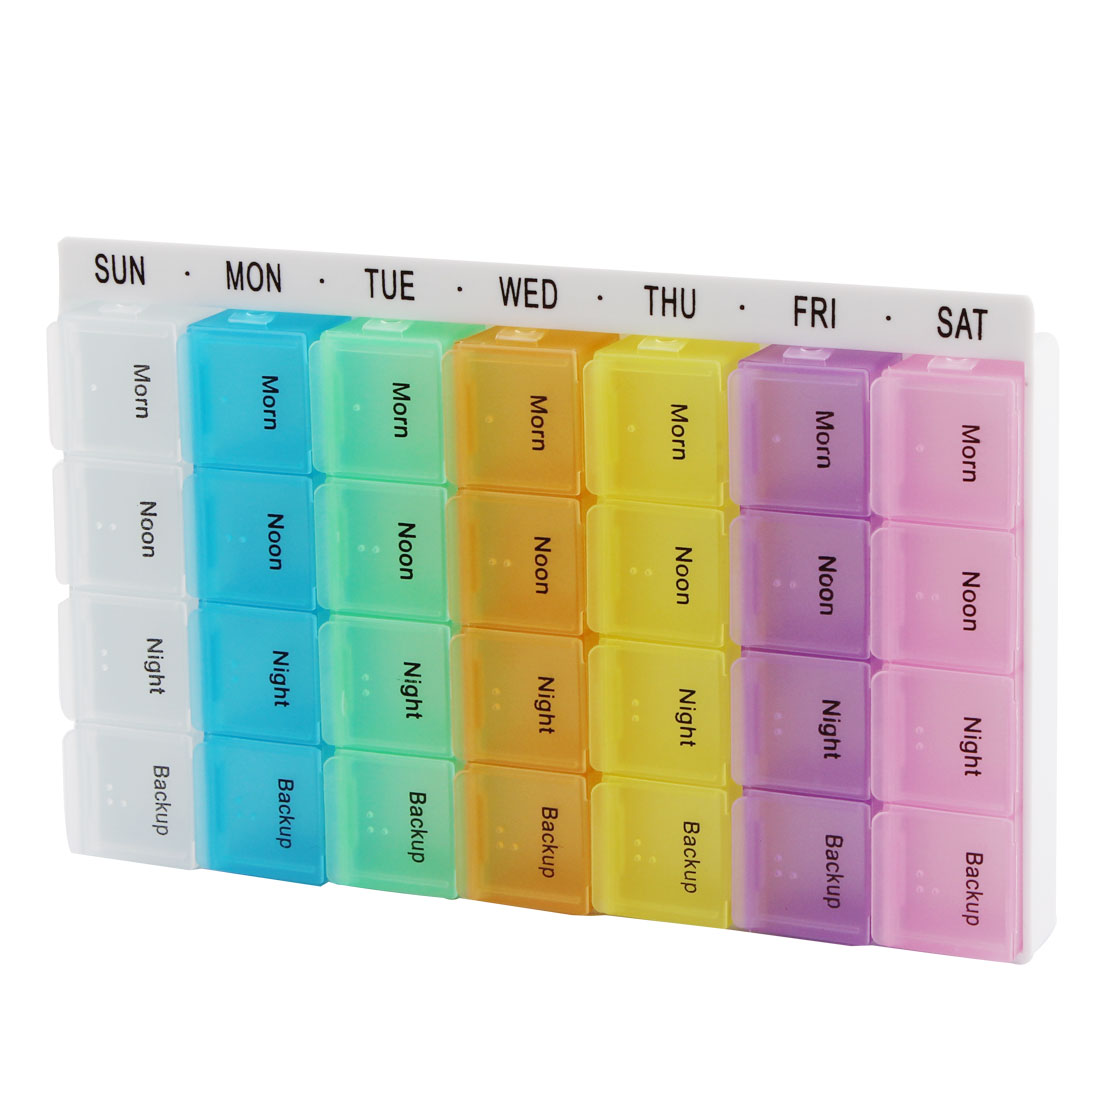 Travel Household Plastic Medication Reminder Daily Am PM Weekly Pill Boxes Cases